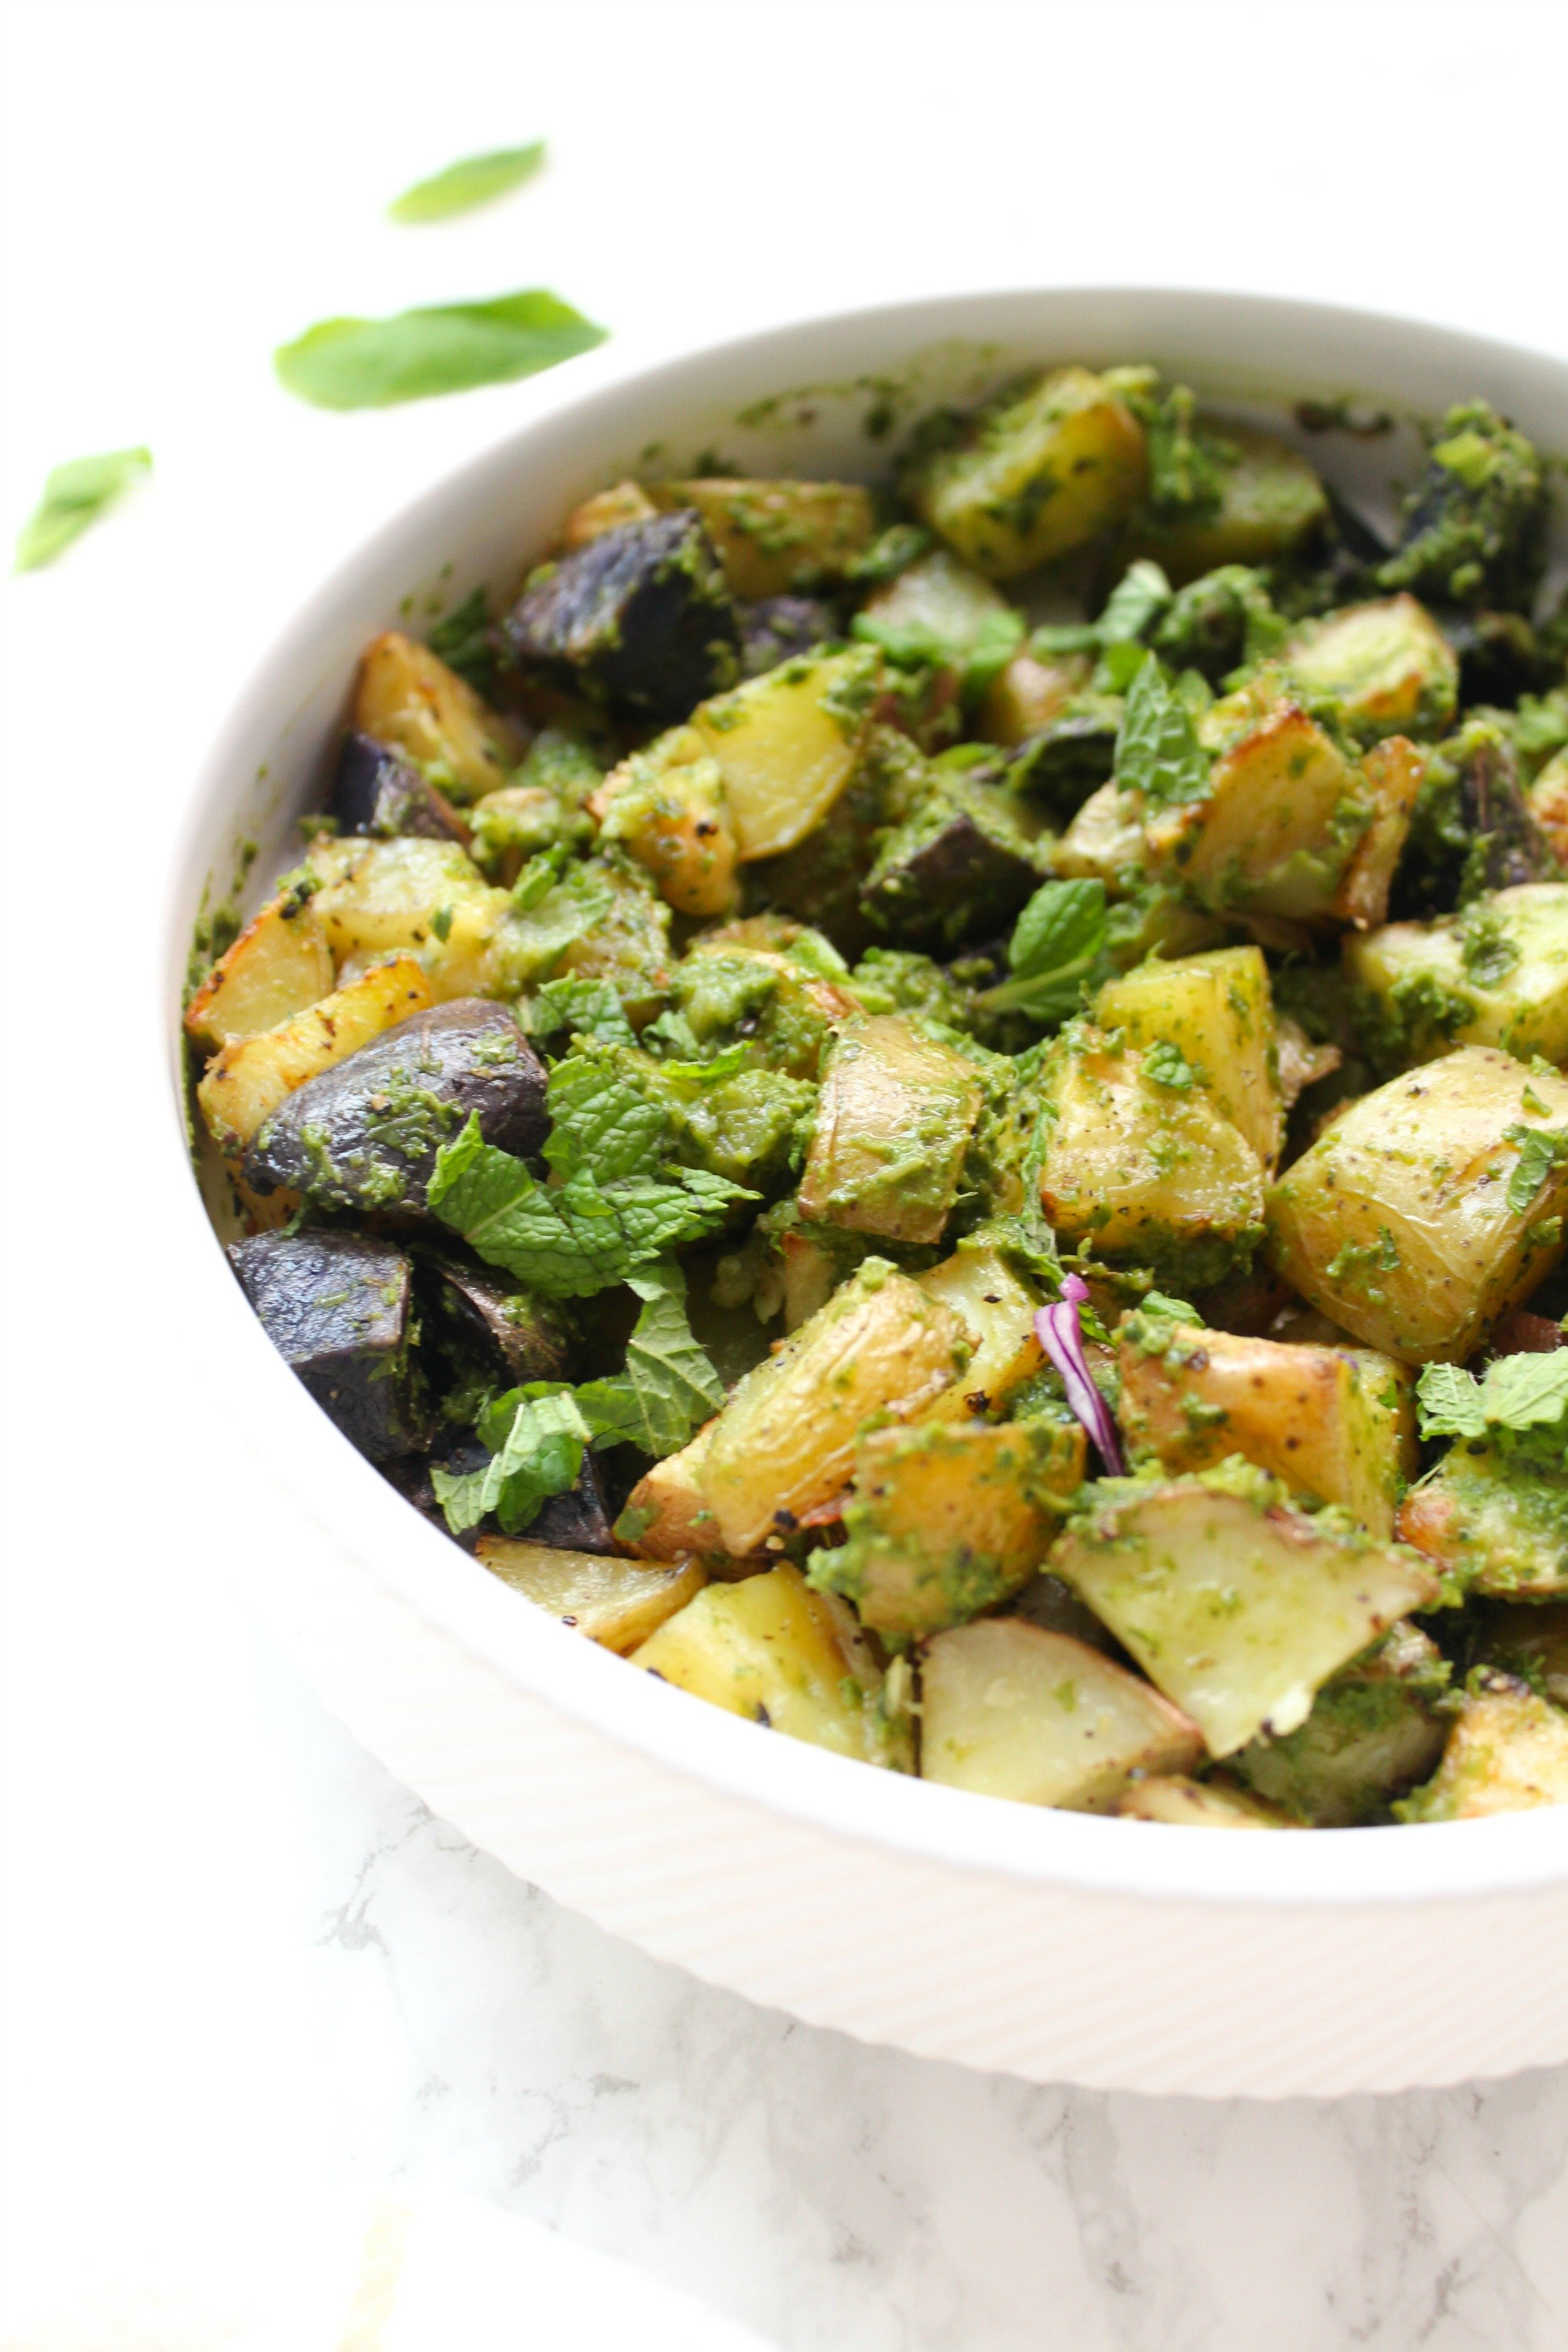 TheseRoasted Garlic and Pesto Potatoes are loaded with tons of fresh herbs - the perfect side dish for any time of year | ThisSavoryVegan.com #thissavoryvegan #potatoes #vegansidedish